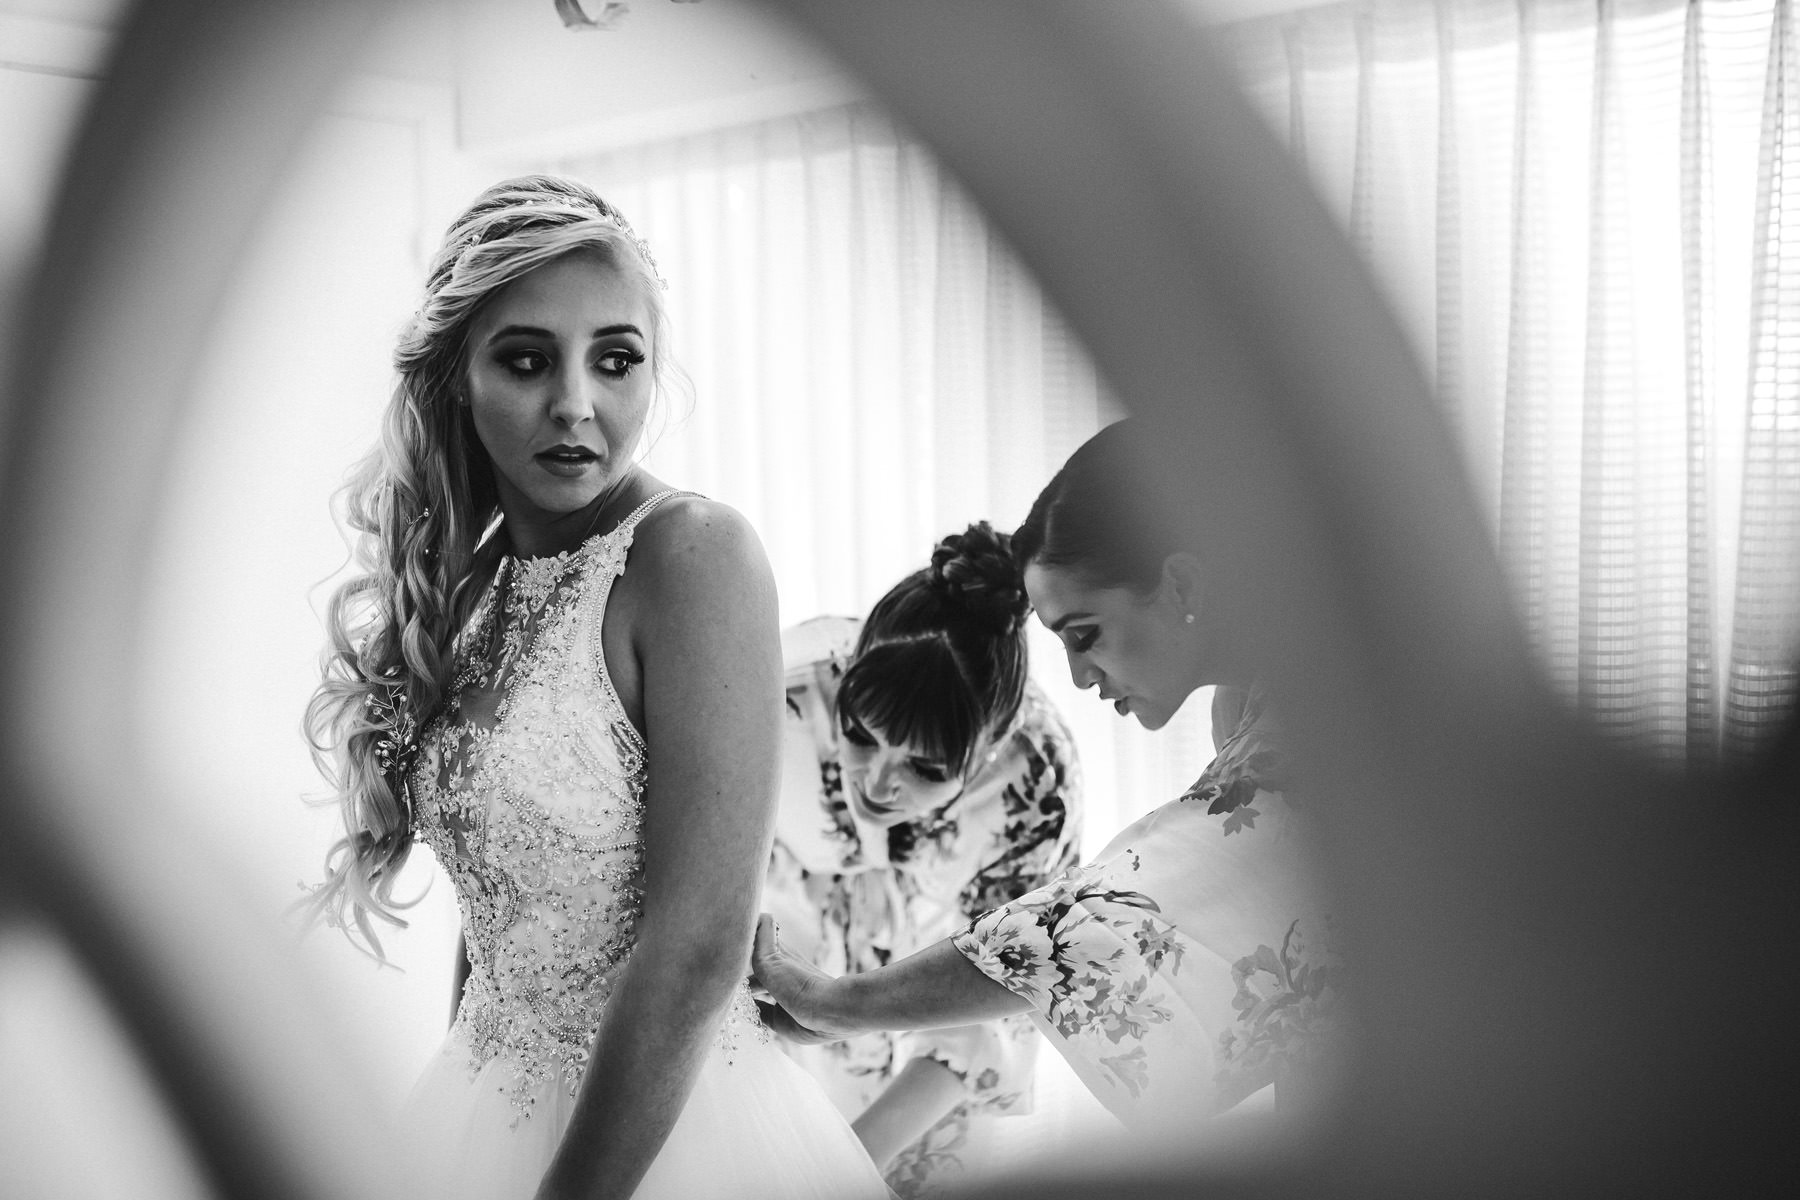 bride-anticipation-nerves-jitters-black-and-white-tiny-house-photo.jpg